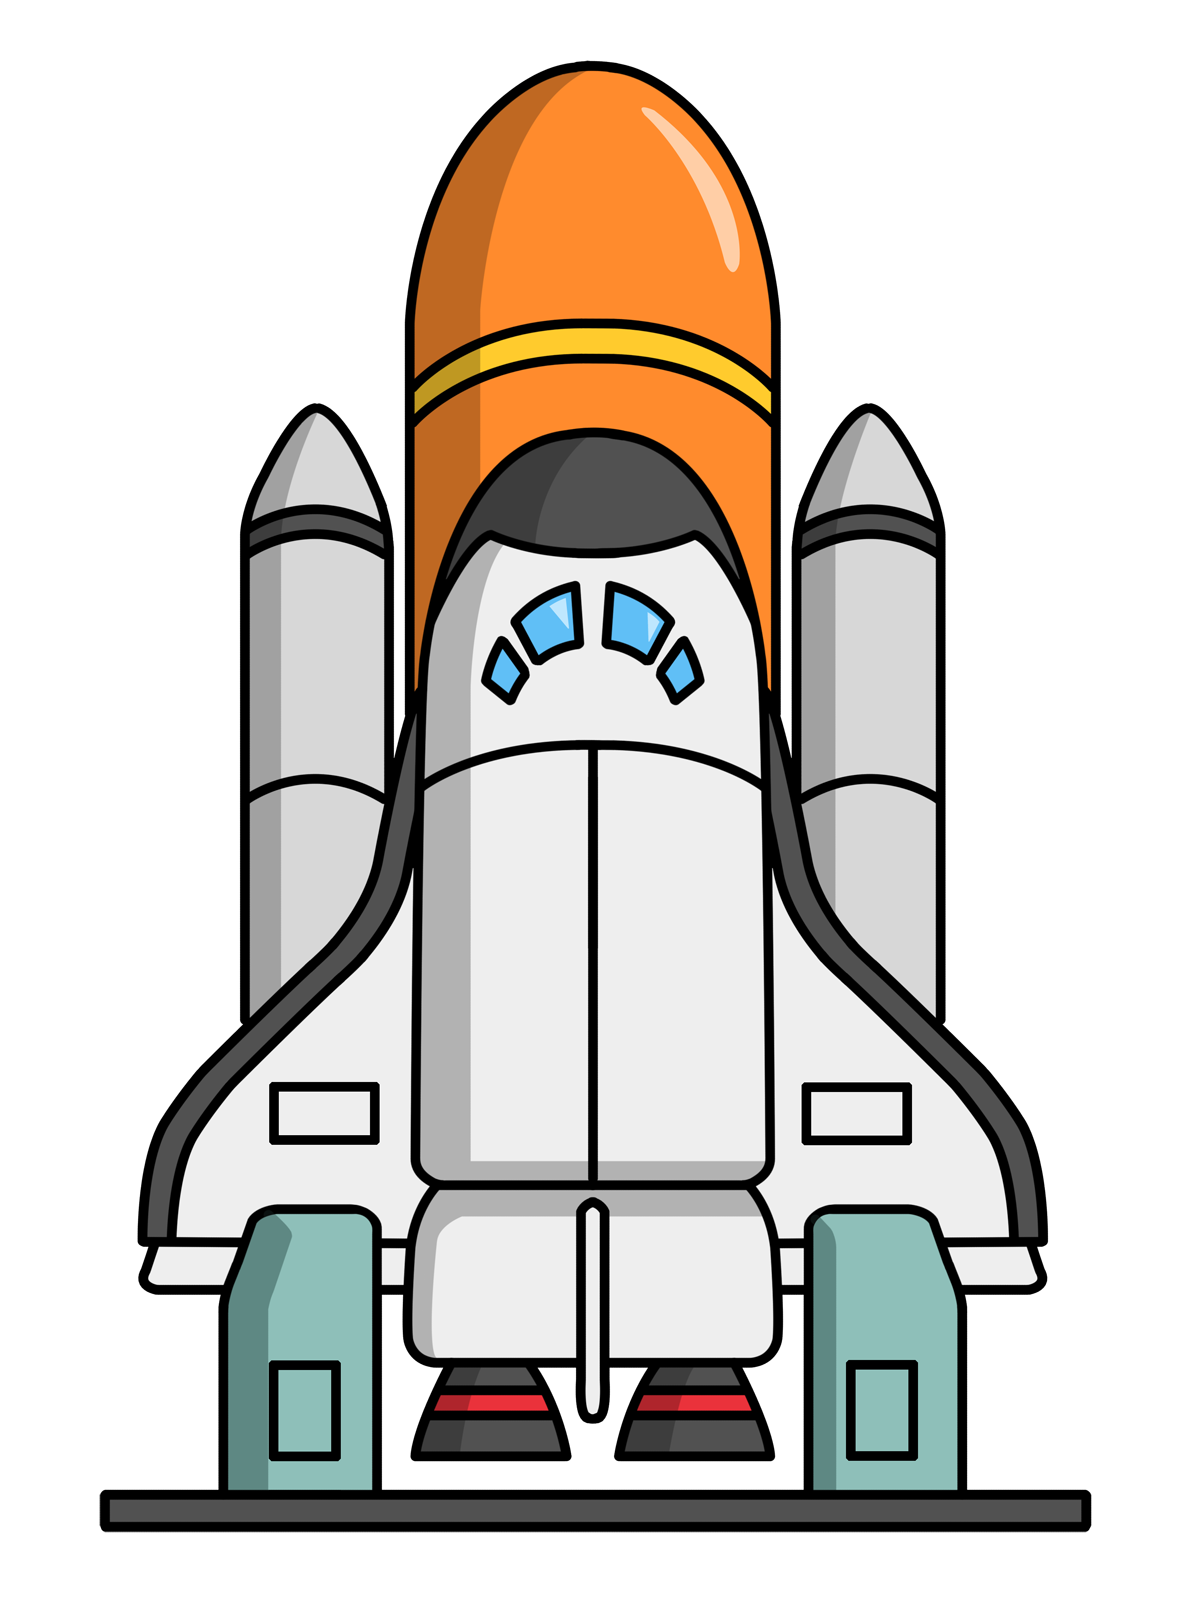 nasa shuttle png